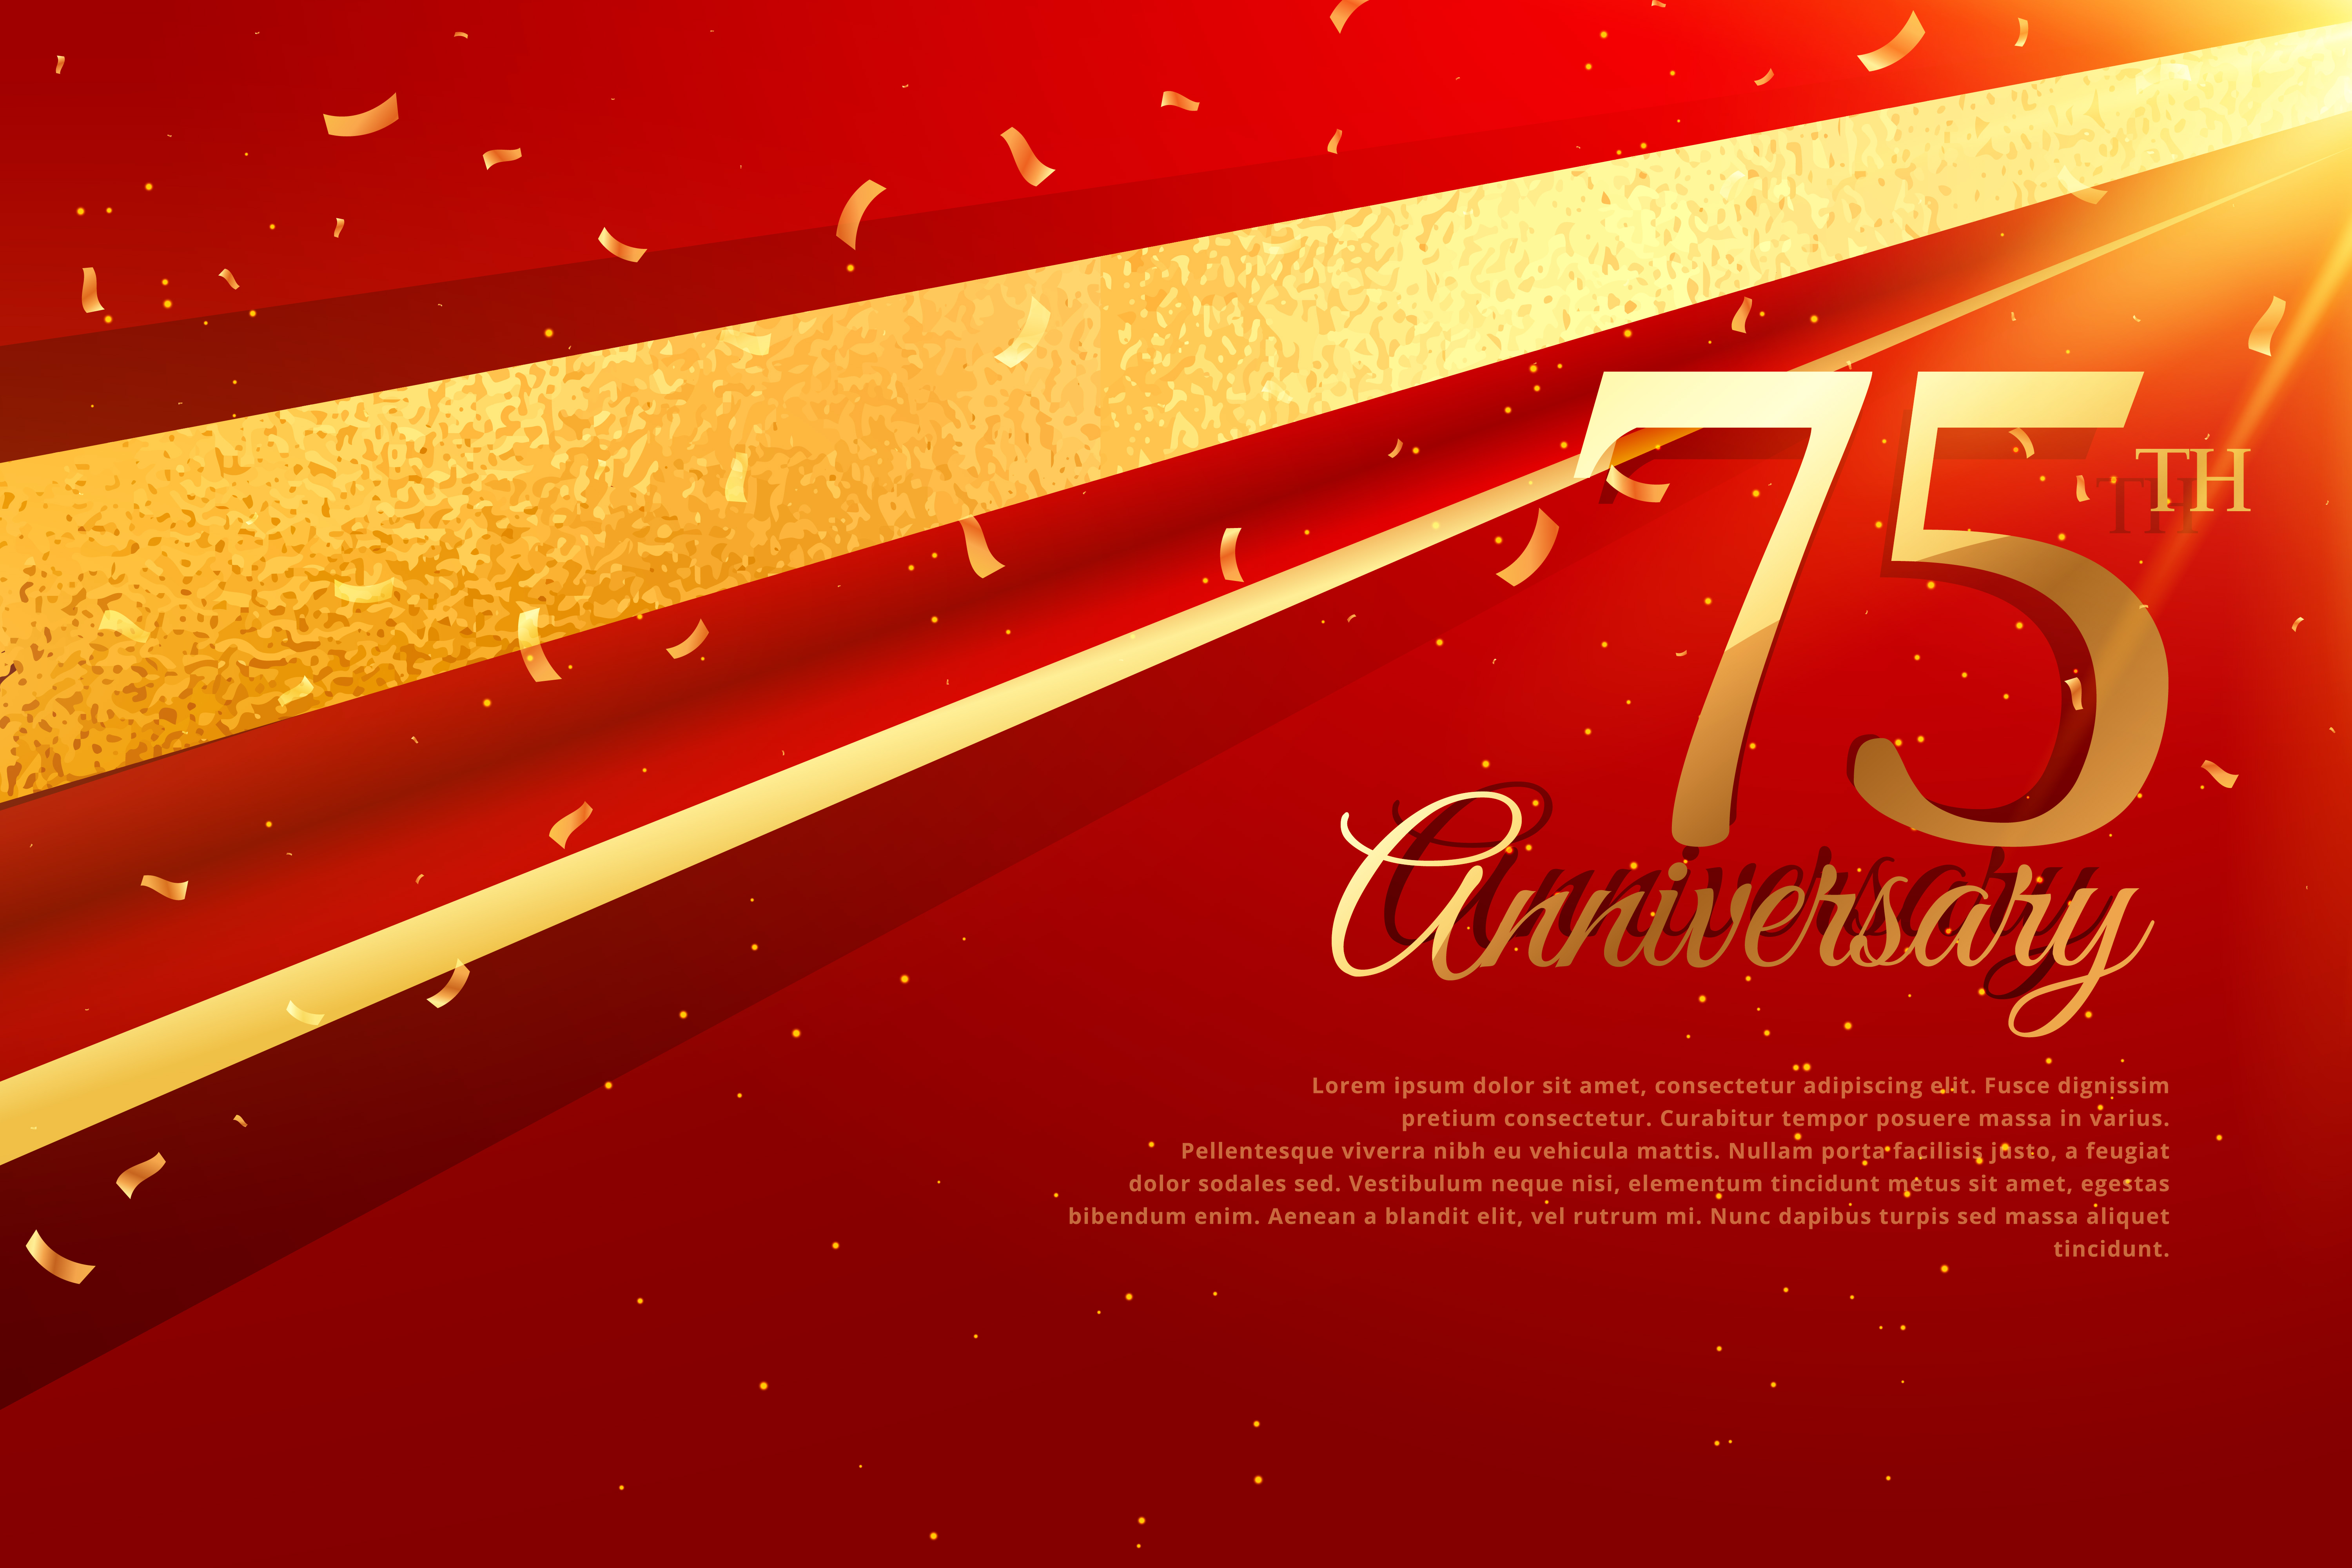 75th Anniversary Celebration Card Template Download Free